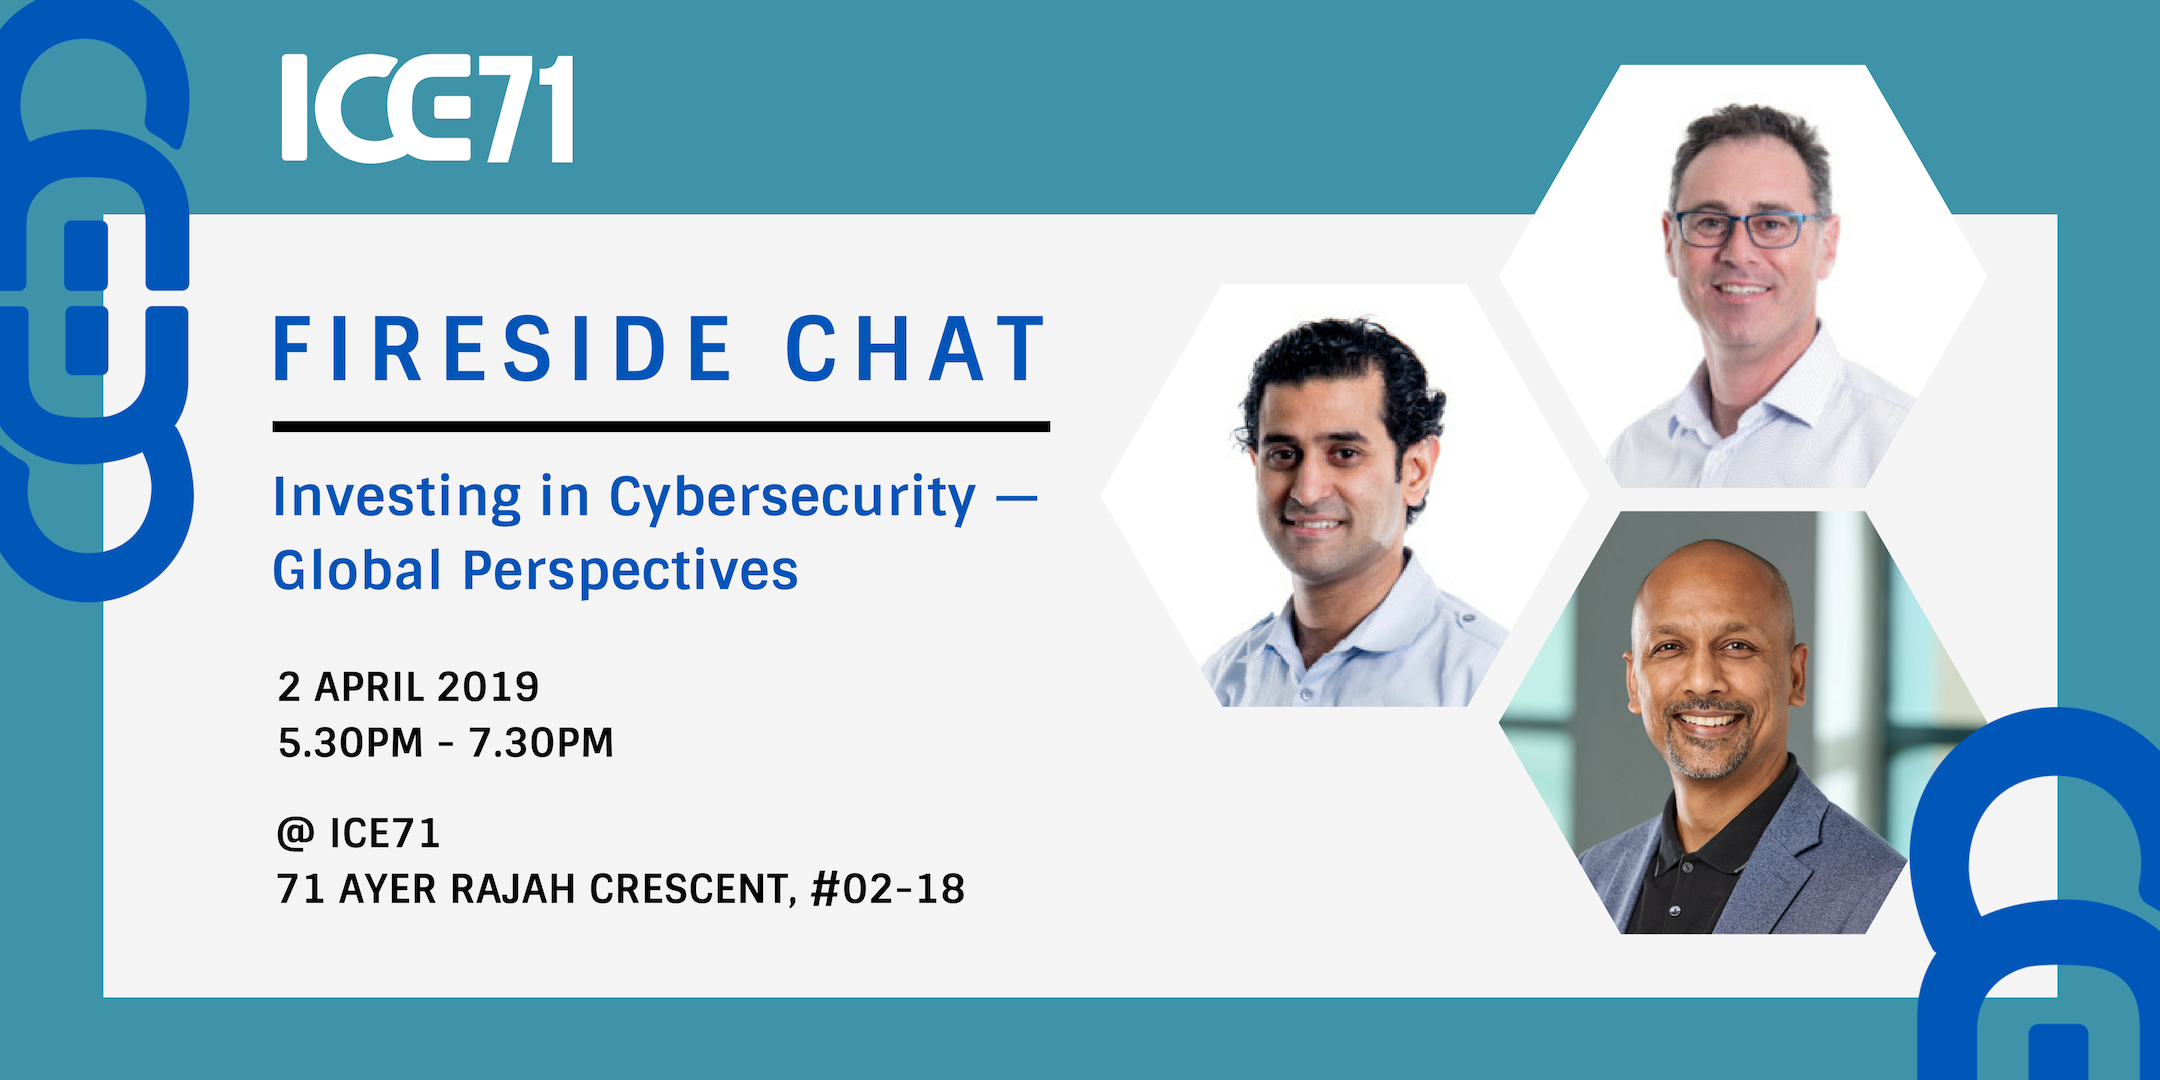 Fireside Chat for Investors: Investing in Cybersecurity – Global Perspectives